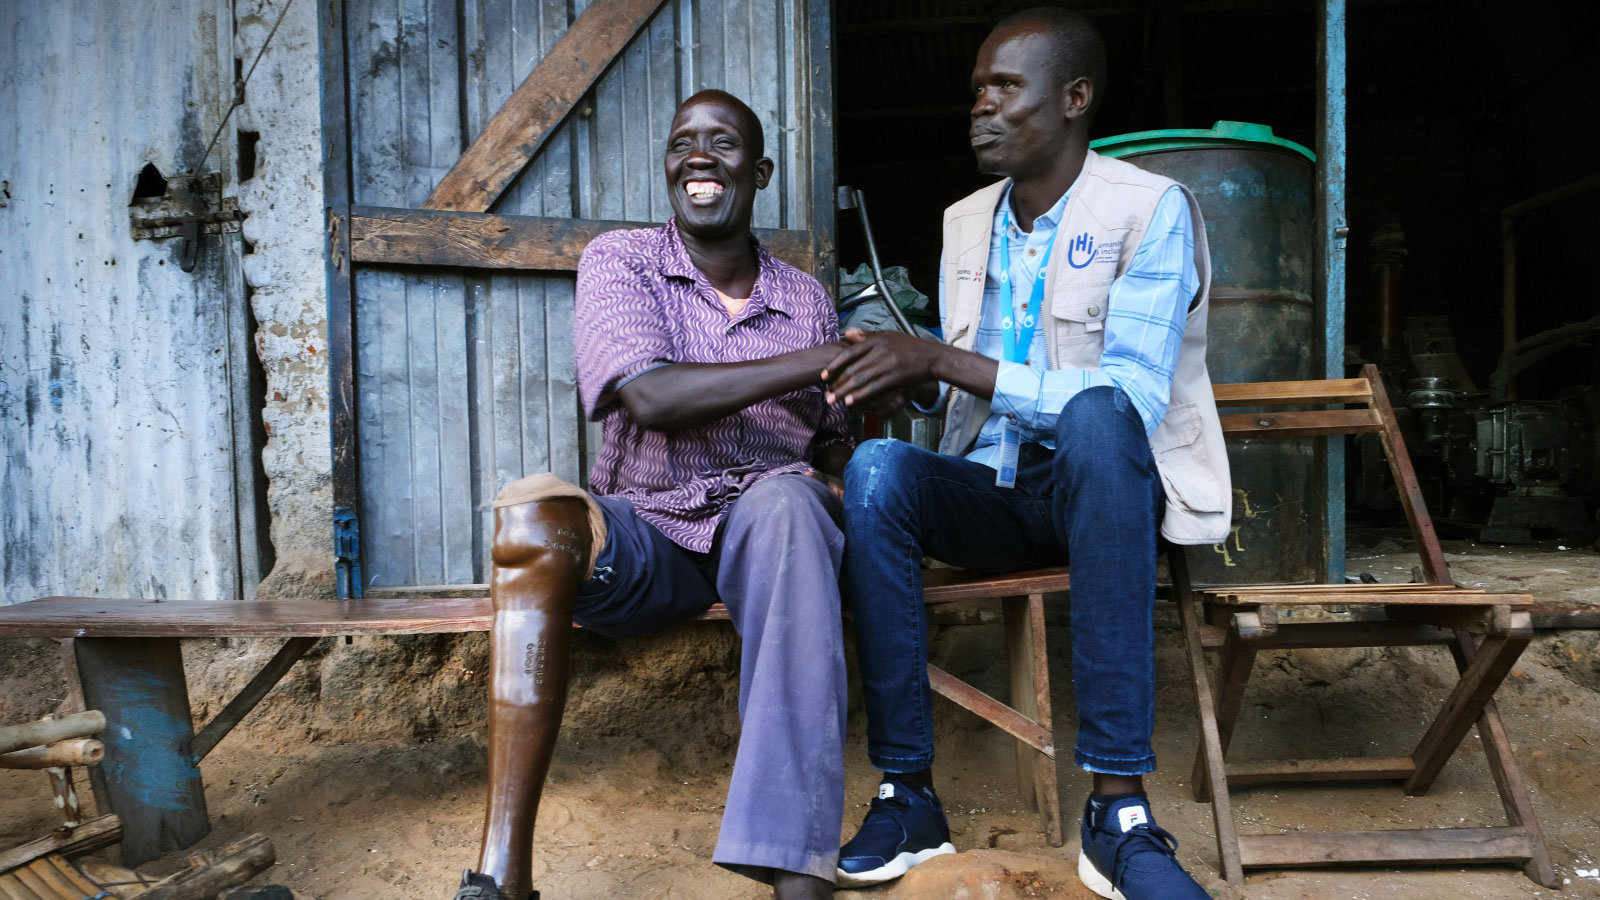 Oliver -45 -receives-rehabilitation-care-from-a-physical-therapist-with-Humanity- -Inclusion-in-South-Sudan